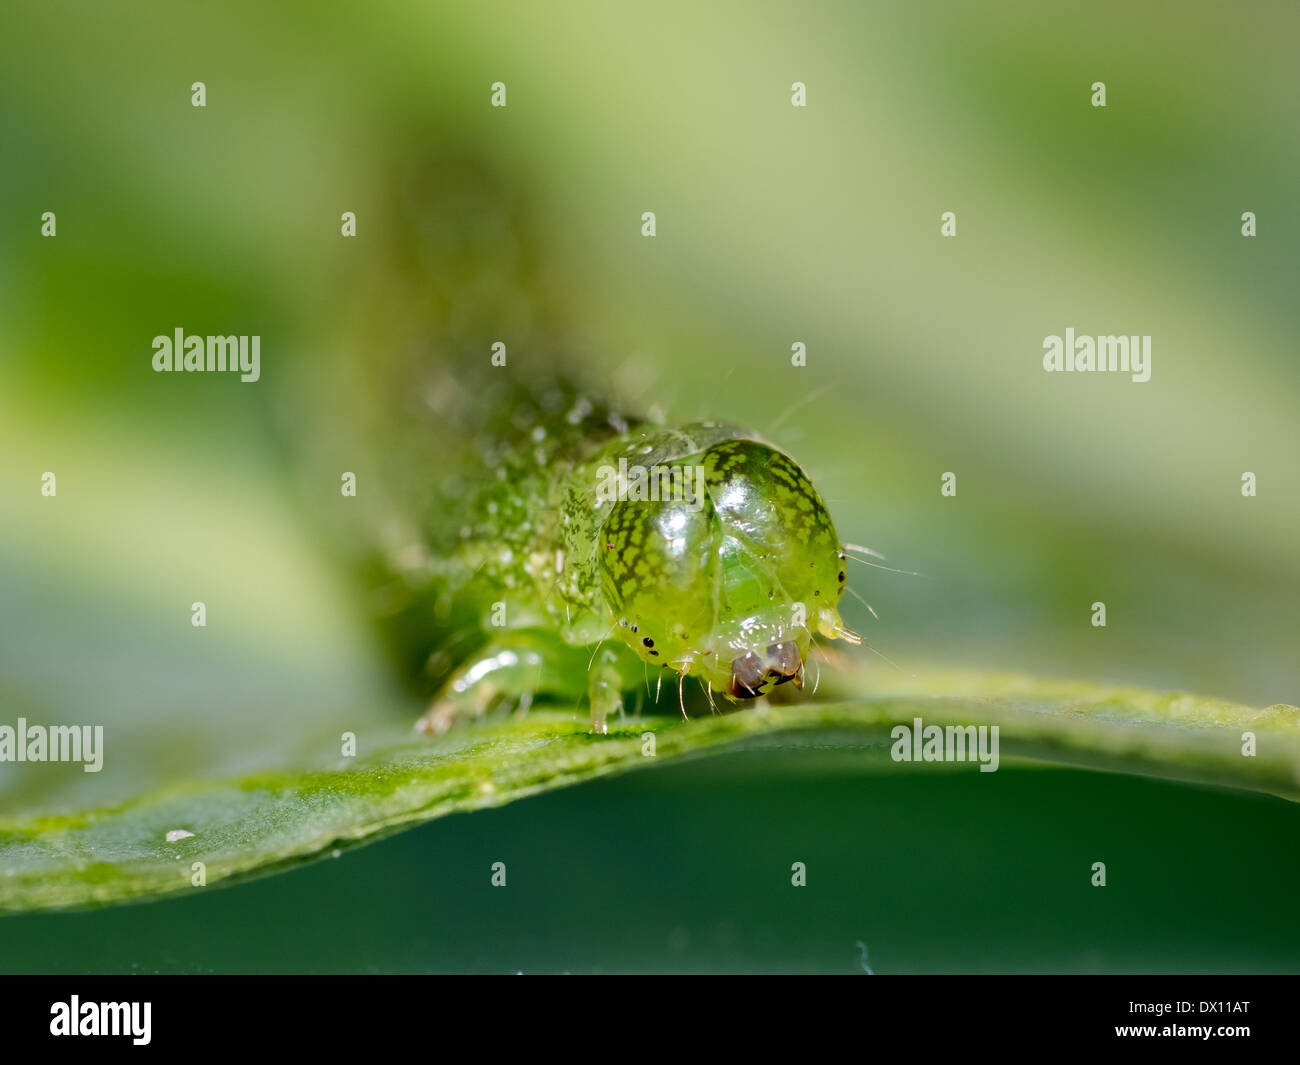 closeup-of-a-caterpillars-head-and-face-eating-a-cabbage-leaf-DX11AT.jpg